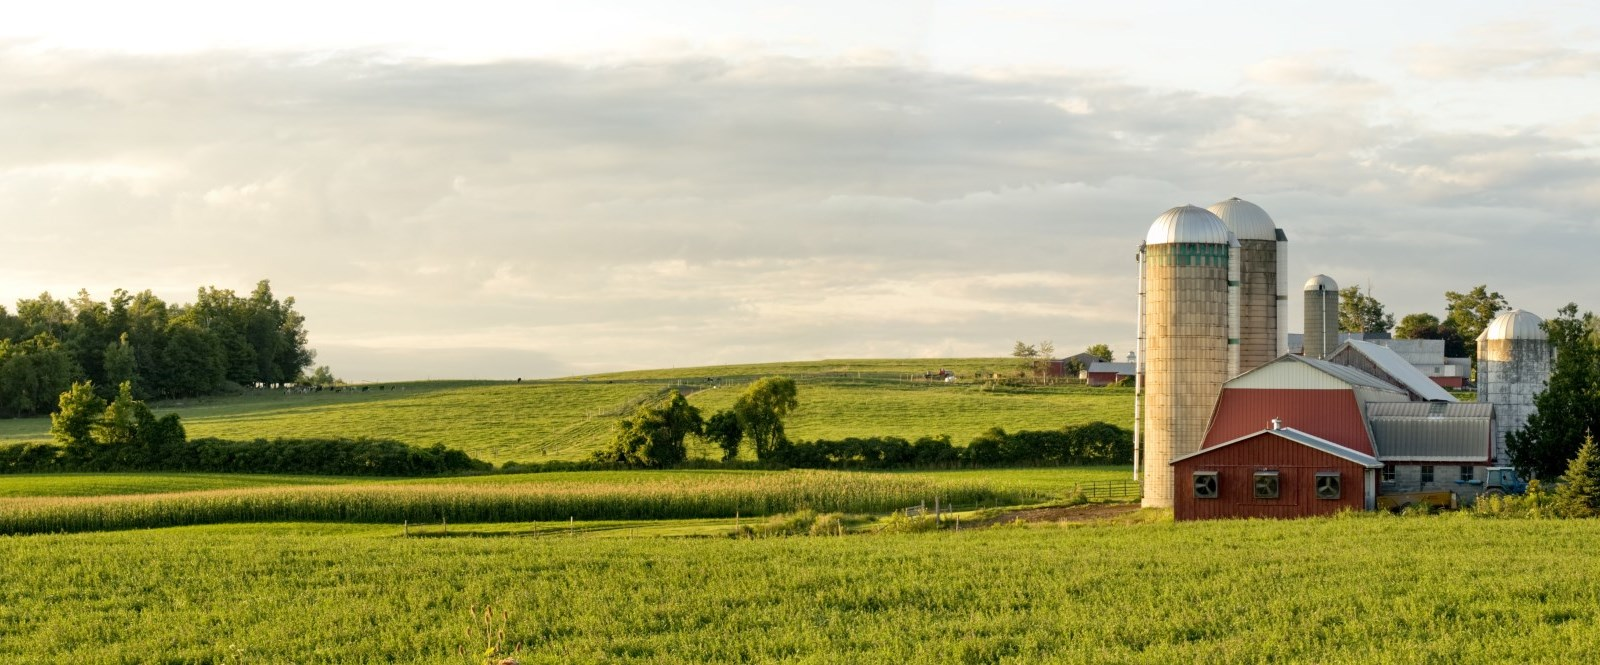 view of farmland with barn and silo